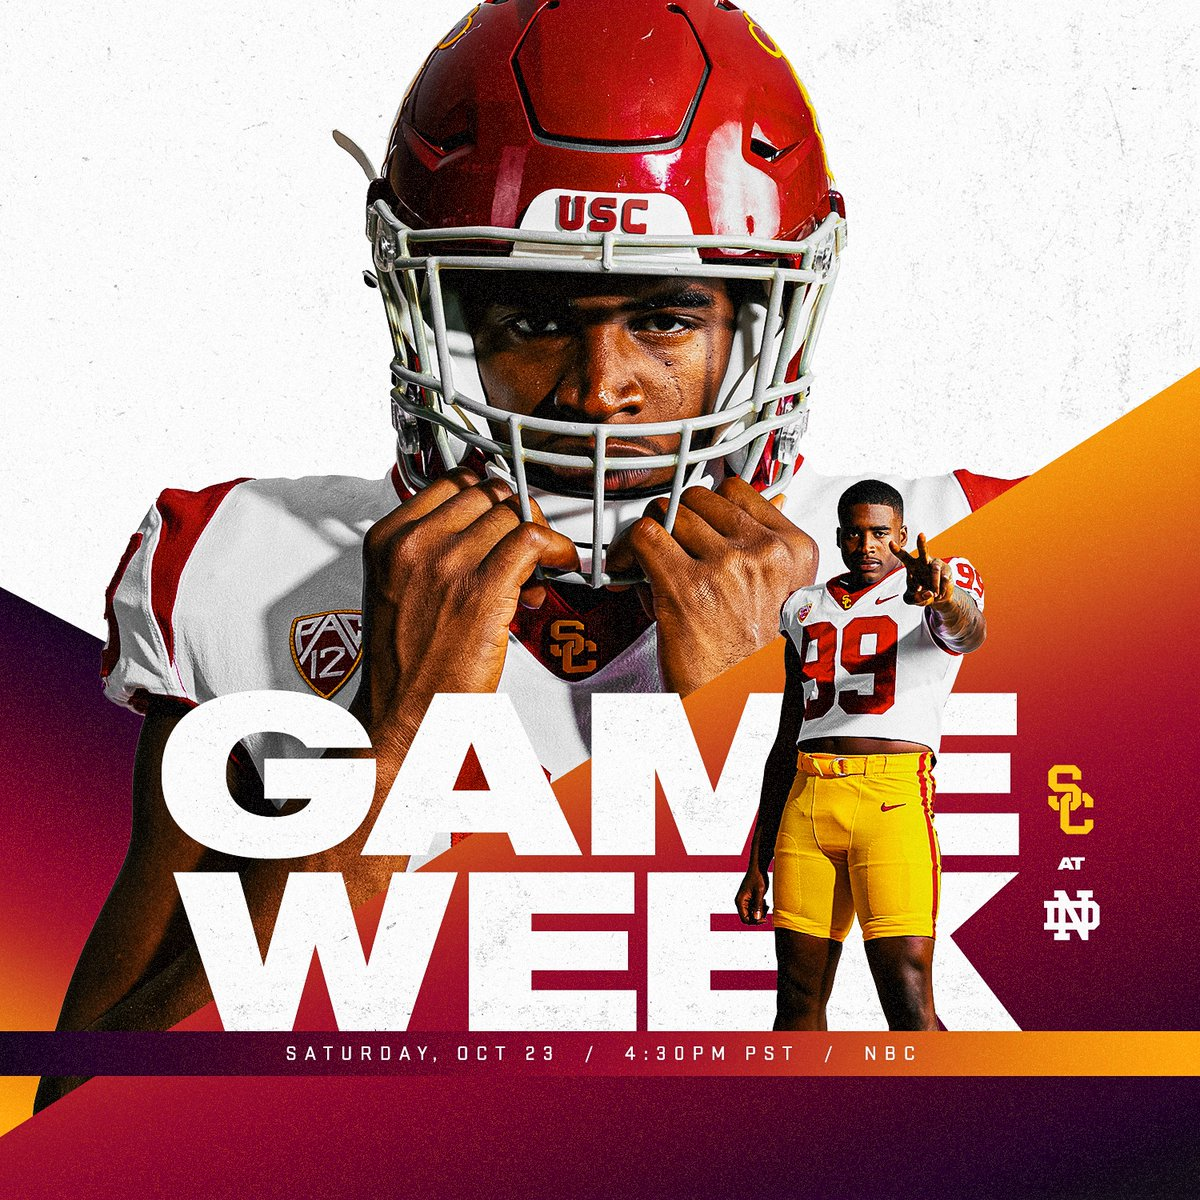 The Battle for the Jeweled Shillelagh. #FightOn✌️